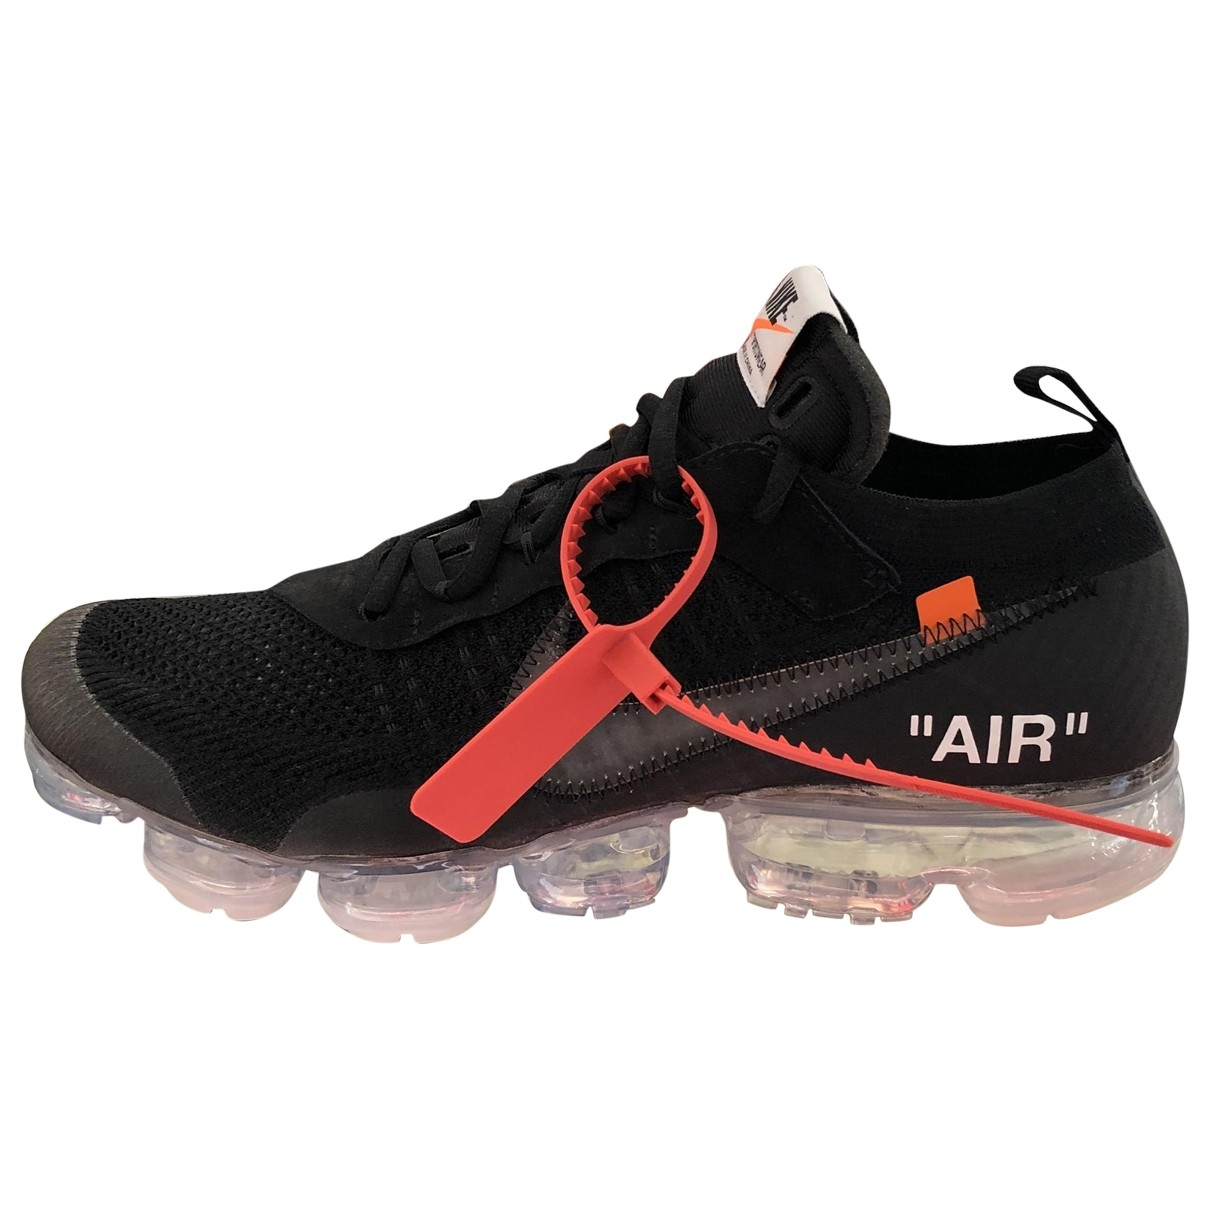 Nike X Off-white Vapormax Black Cloth Trainers for Men 11 US